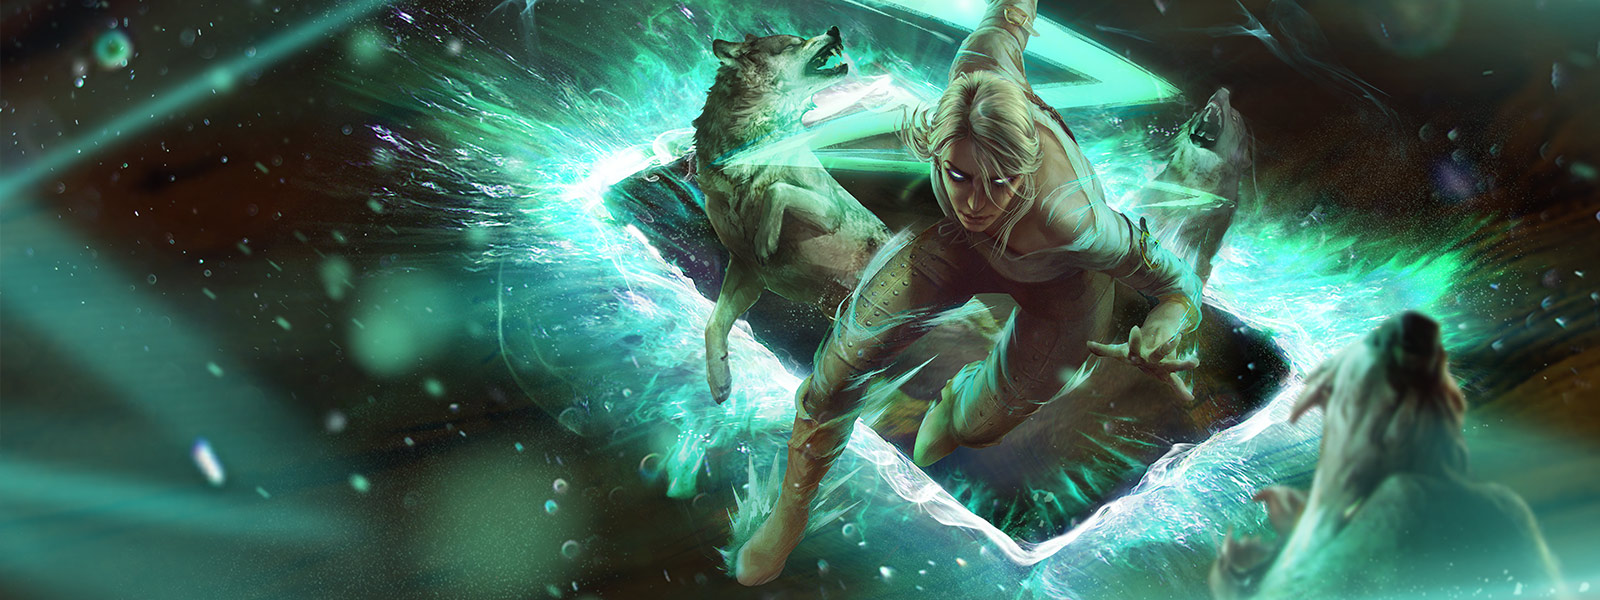 Ciri emerges from a glowing green card attacking wolves with spells